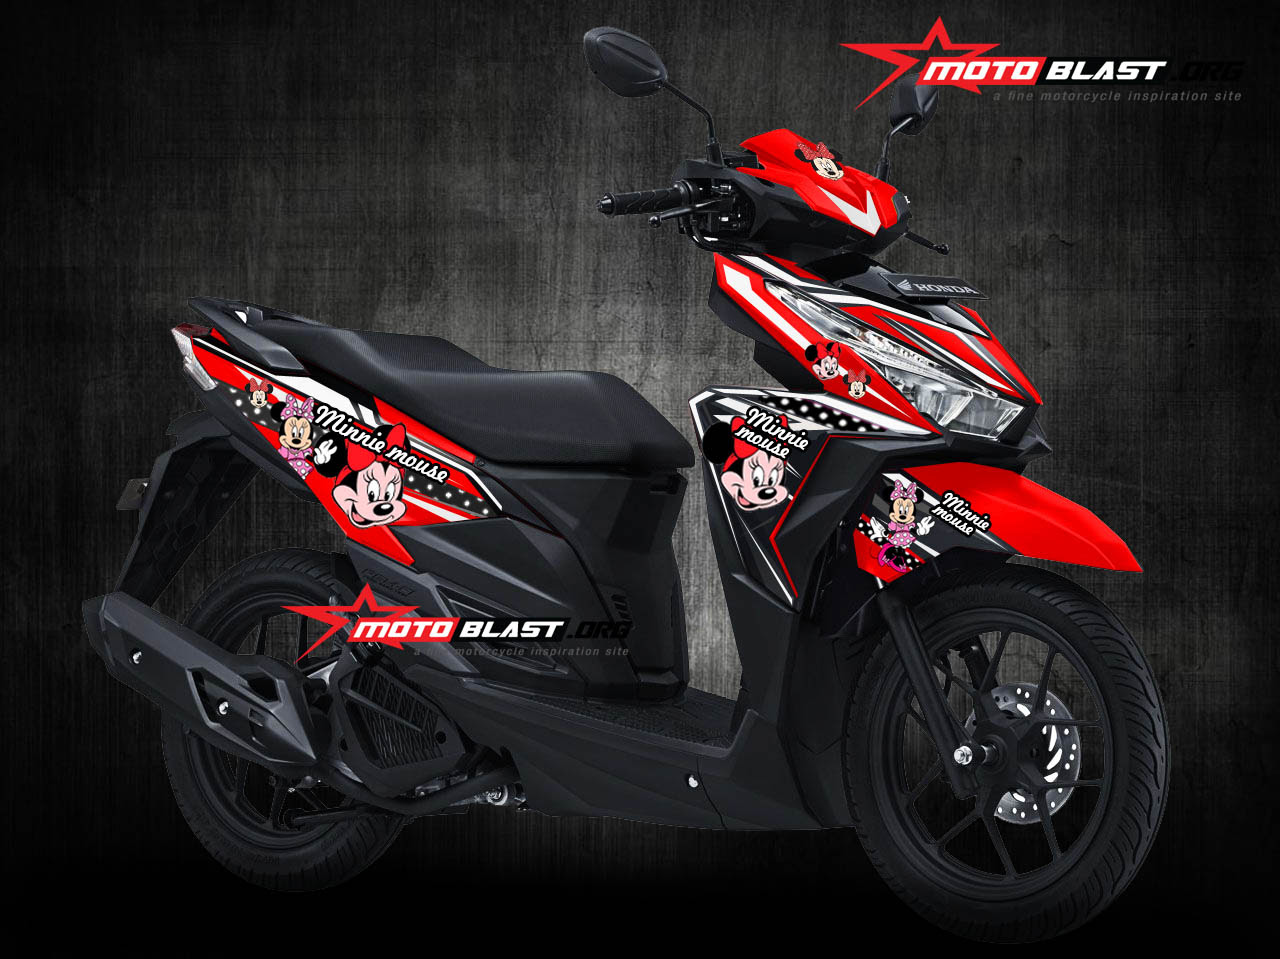 Modifikasi Motor Vario 125 Warna Merah Lampak Modifikasi